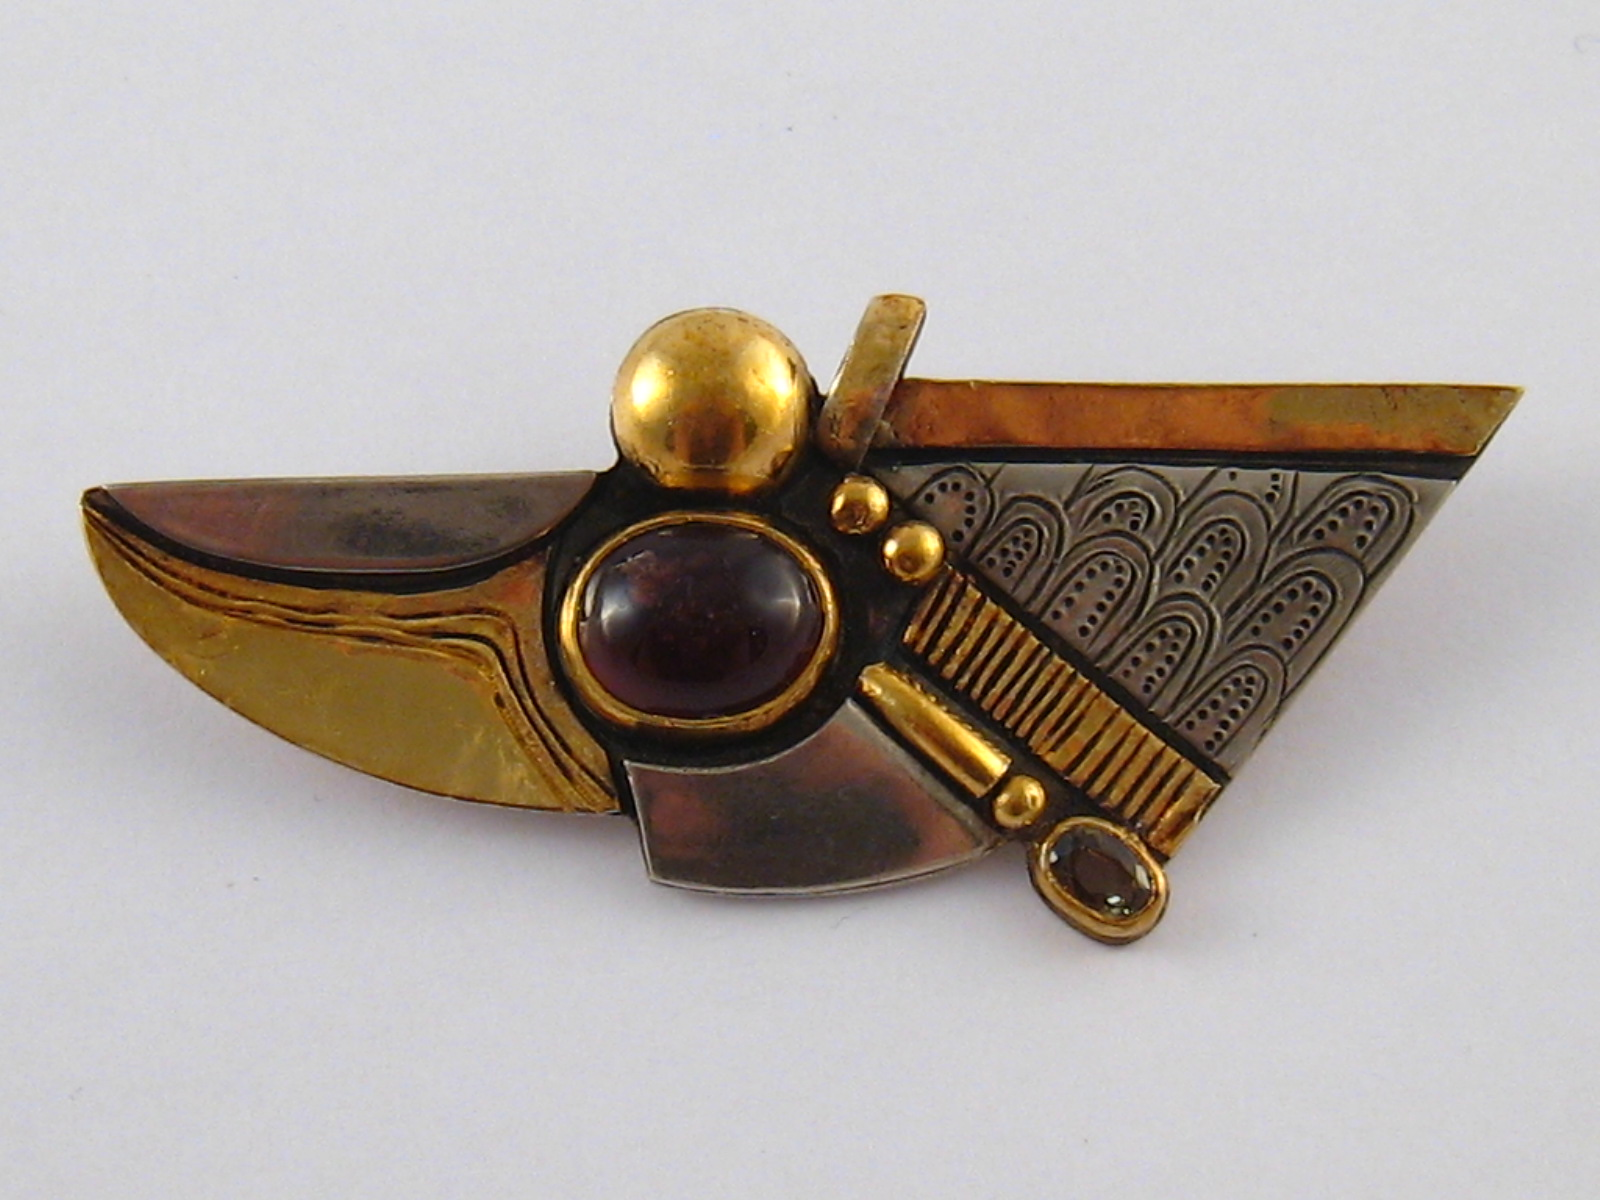 Lot 143 - A gilt and white metal (tests silver) garnet brooch, signed HB, garnet approx 12 x 10mm,